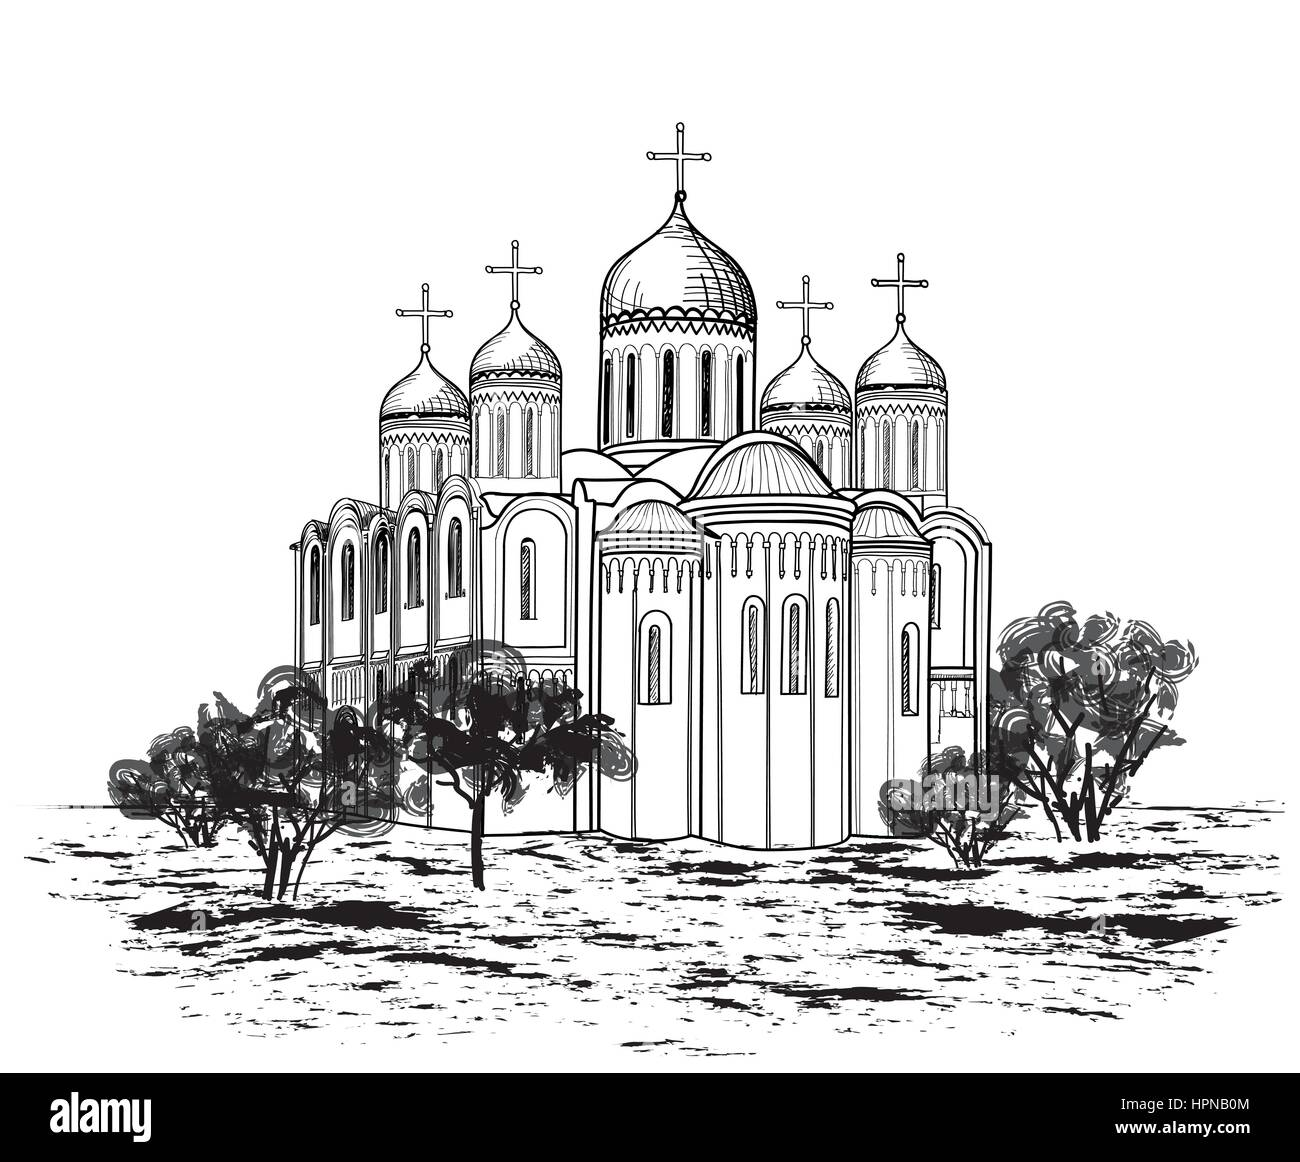 Famous place of Vladimir city view. Russian city landmark landscape. Travel Russia engraving outdoor background. - Stock Vector